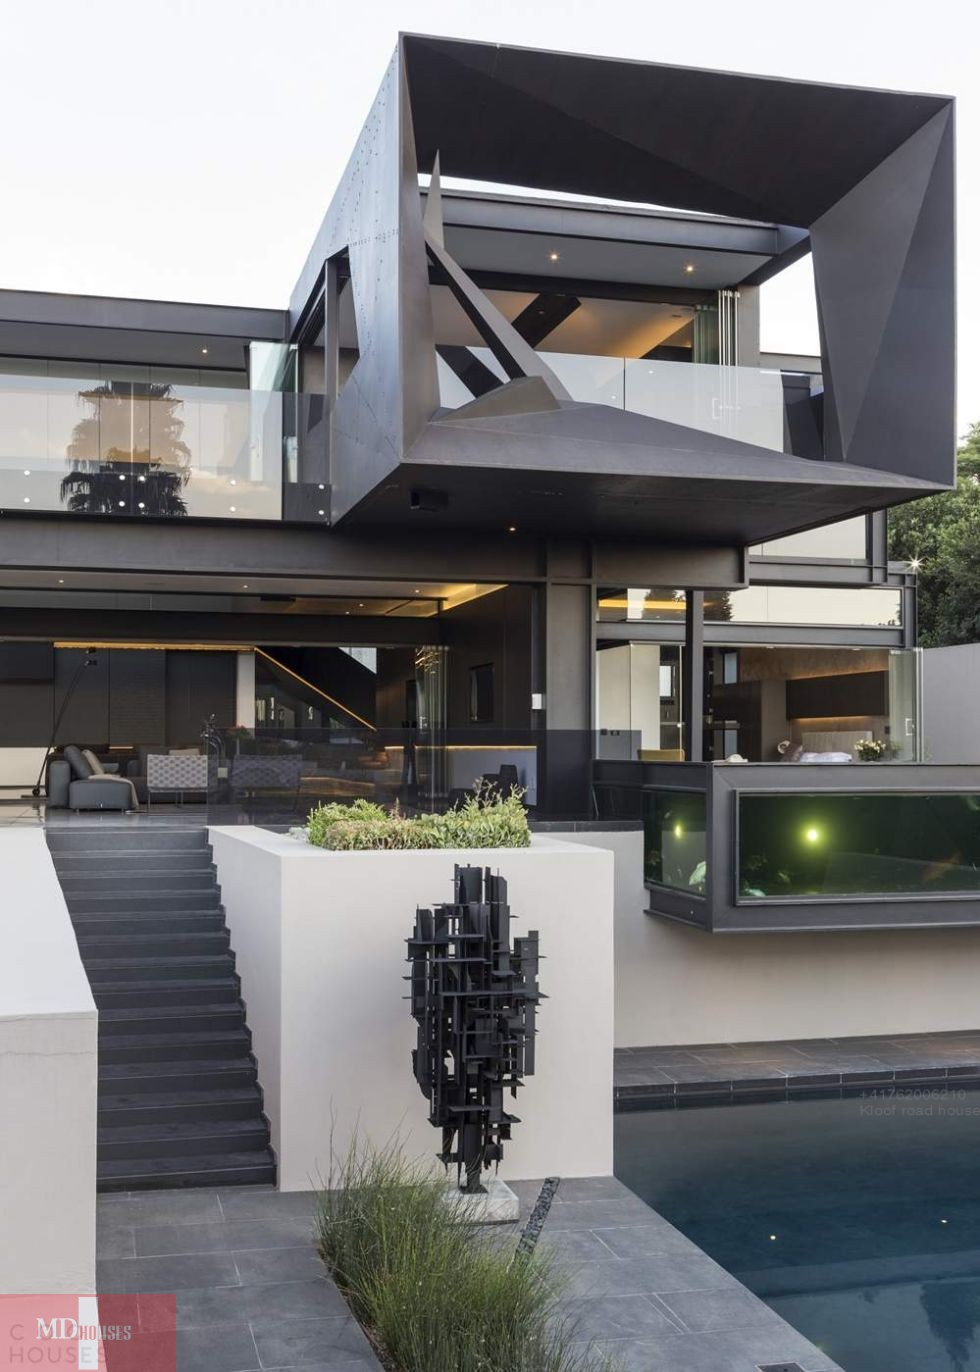 ACDC concrete home for sale (2)